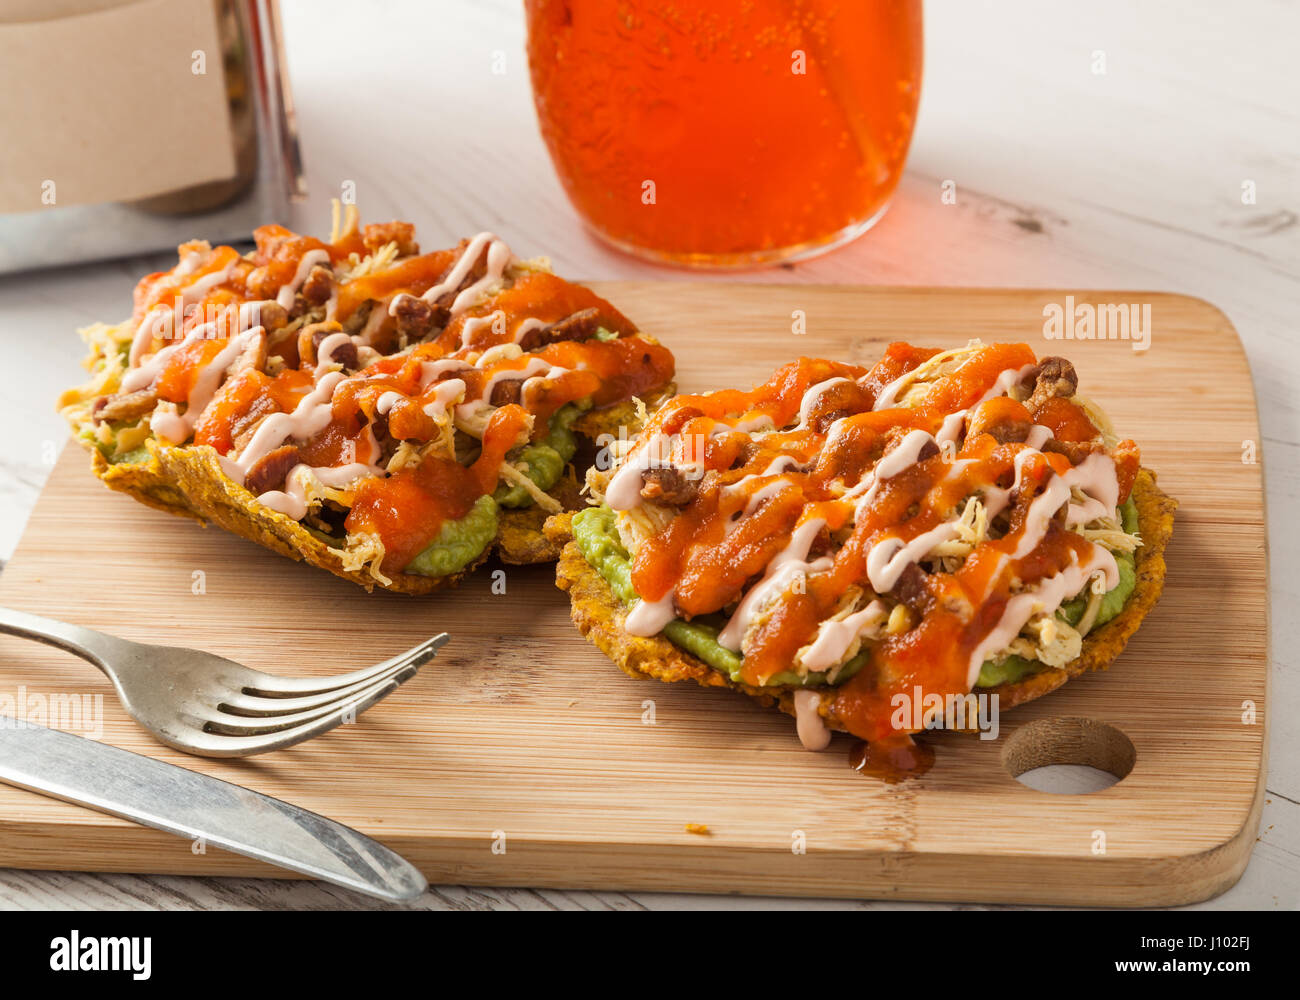 Colombian Food Patacones With Guacamole And Meat Stock Photo